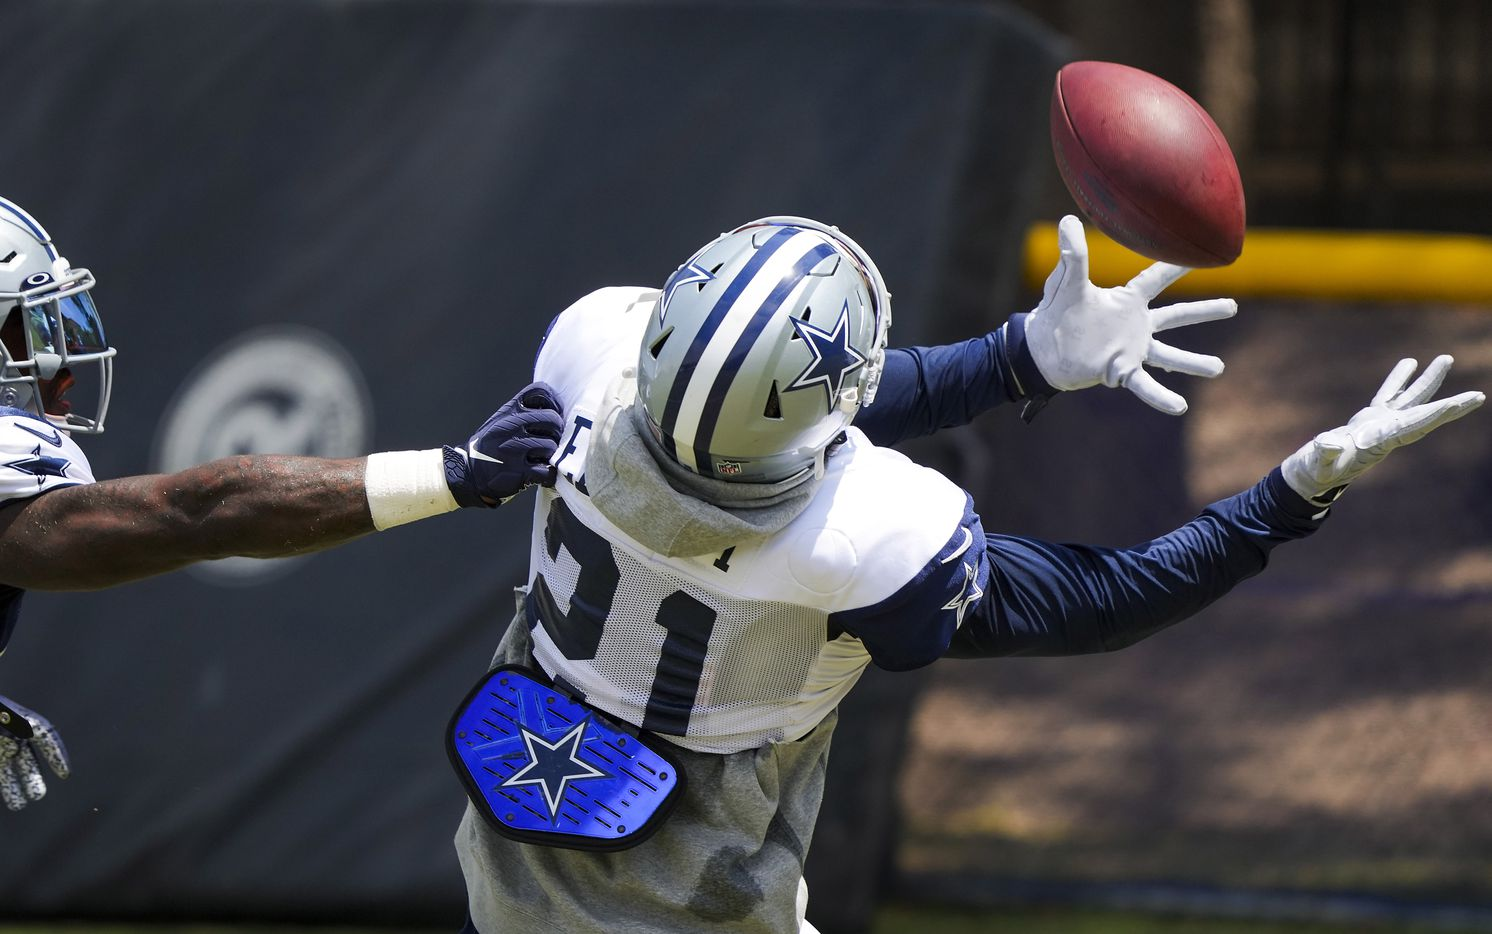 Dallas Cowboys running back Ezekiel Elliott (21) makes a catch as linebacker Keanu Neal (42) defends during a practice at training camp on Wednesday, July 28, 2021, in Oxnard, Calif.